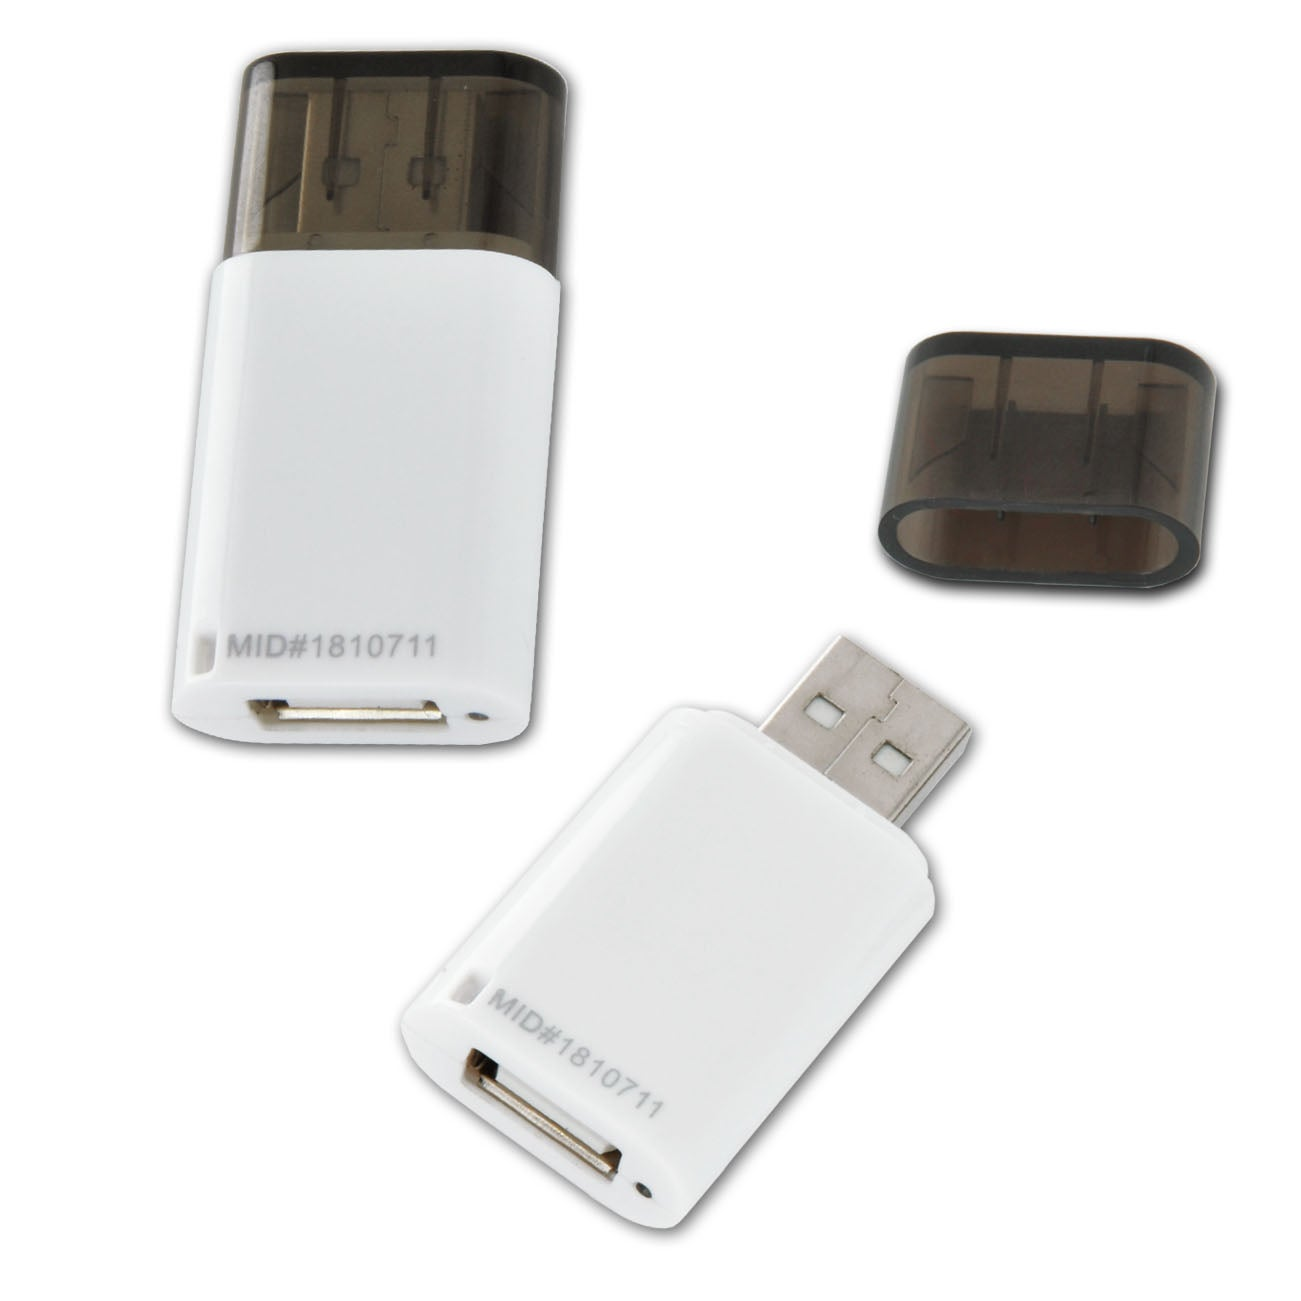 Vivitar USB Charger for iPad